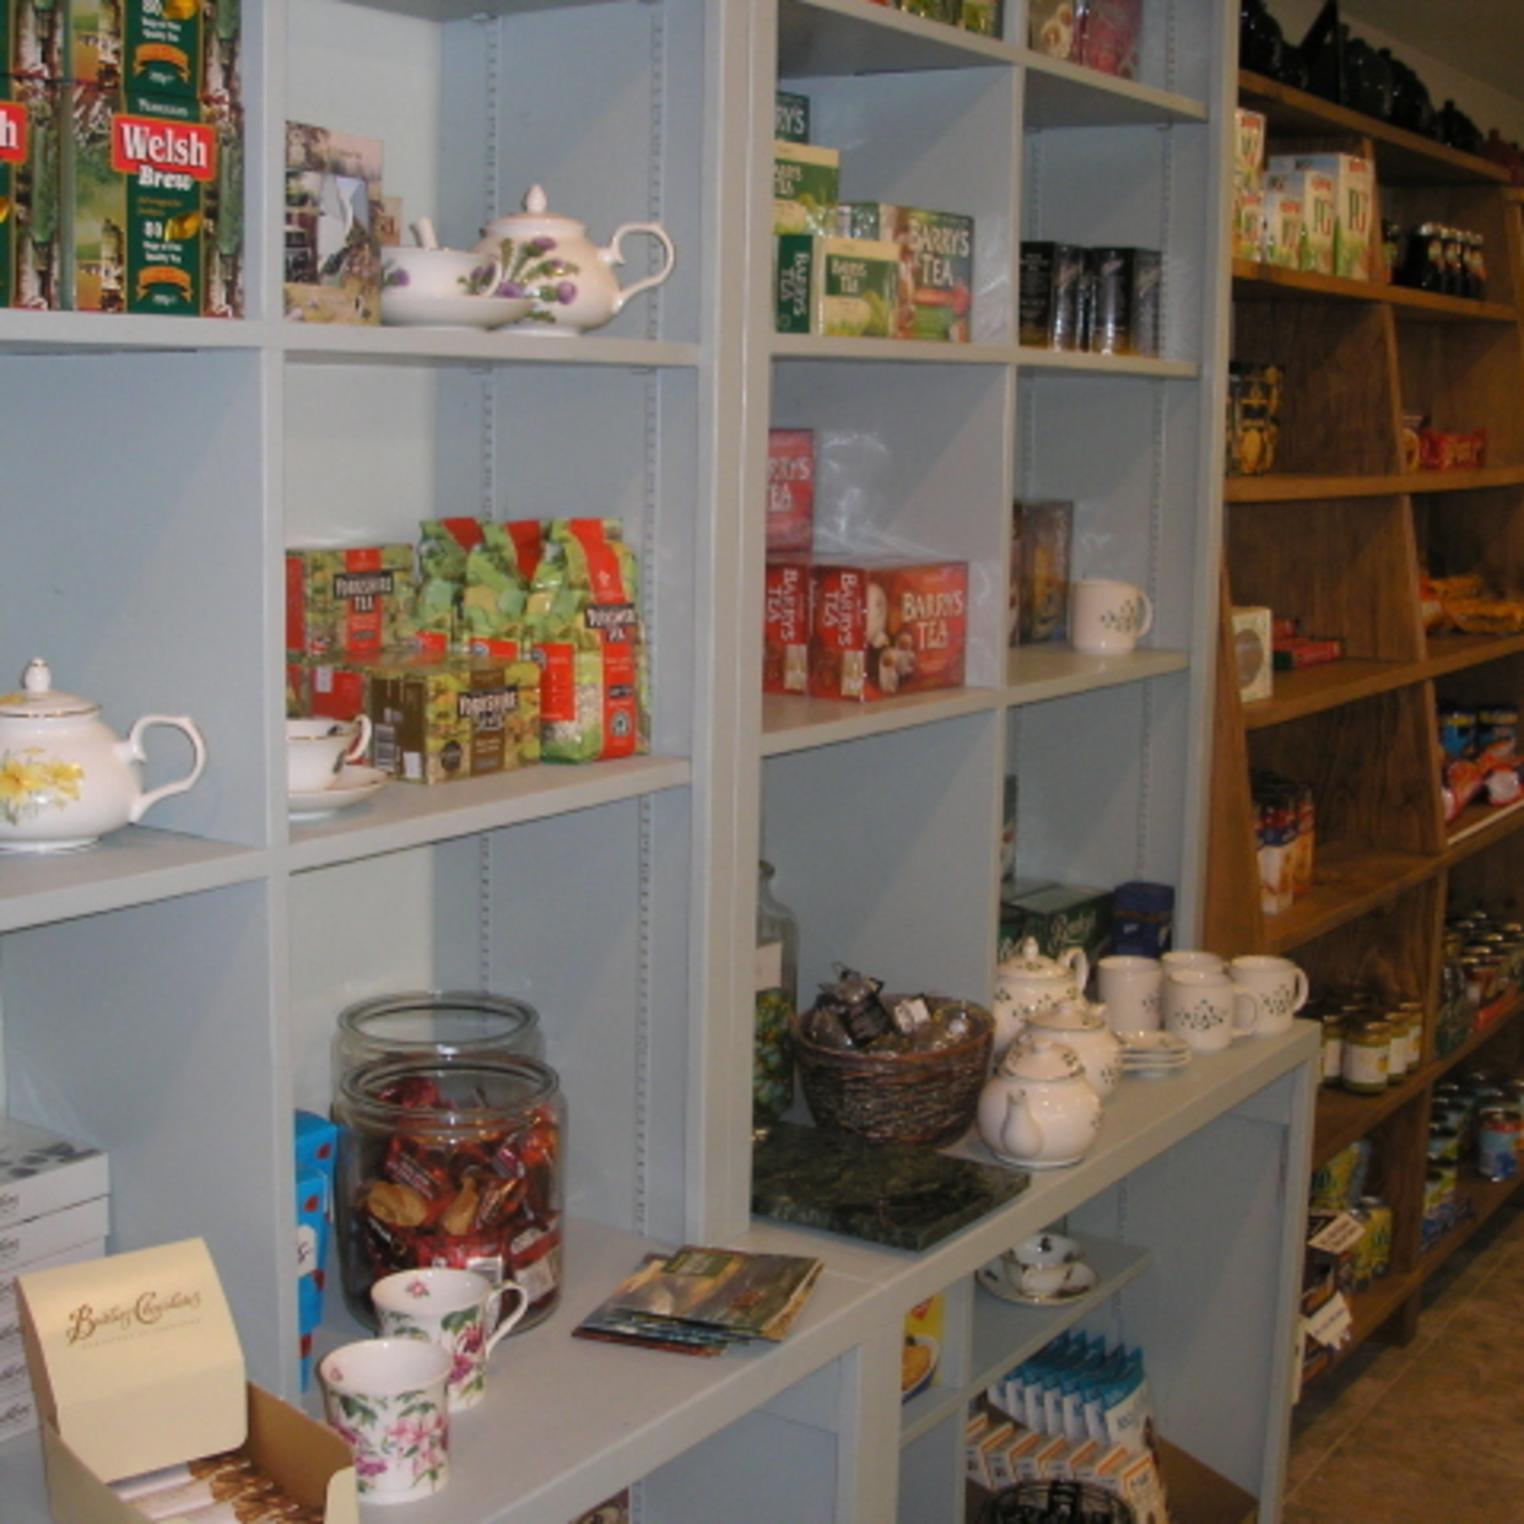 Central PA's largest selection of imported British and Irish Foods and Tea.